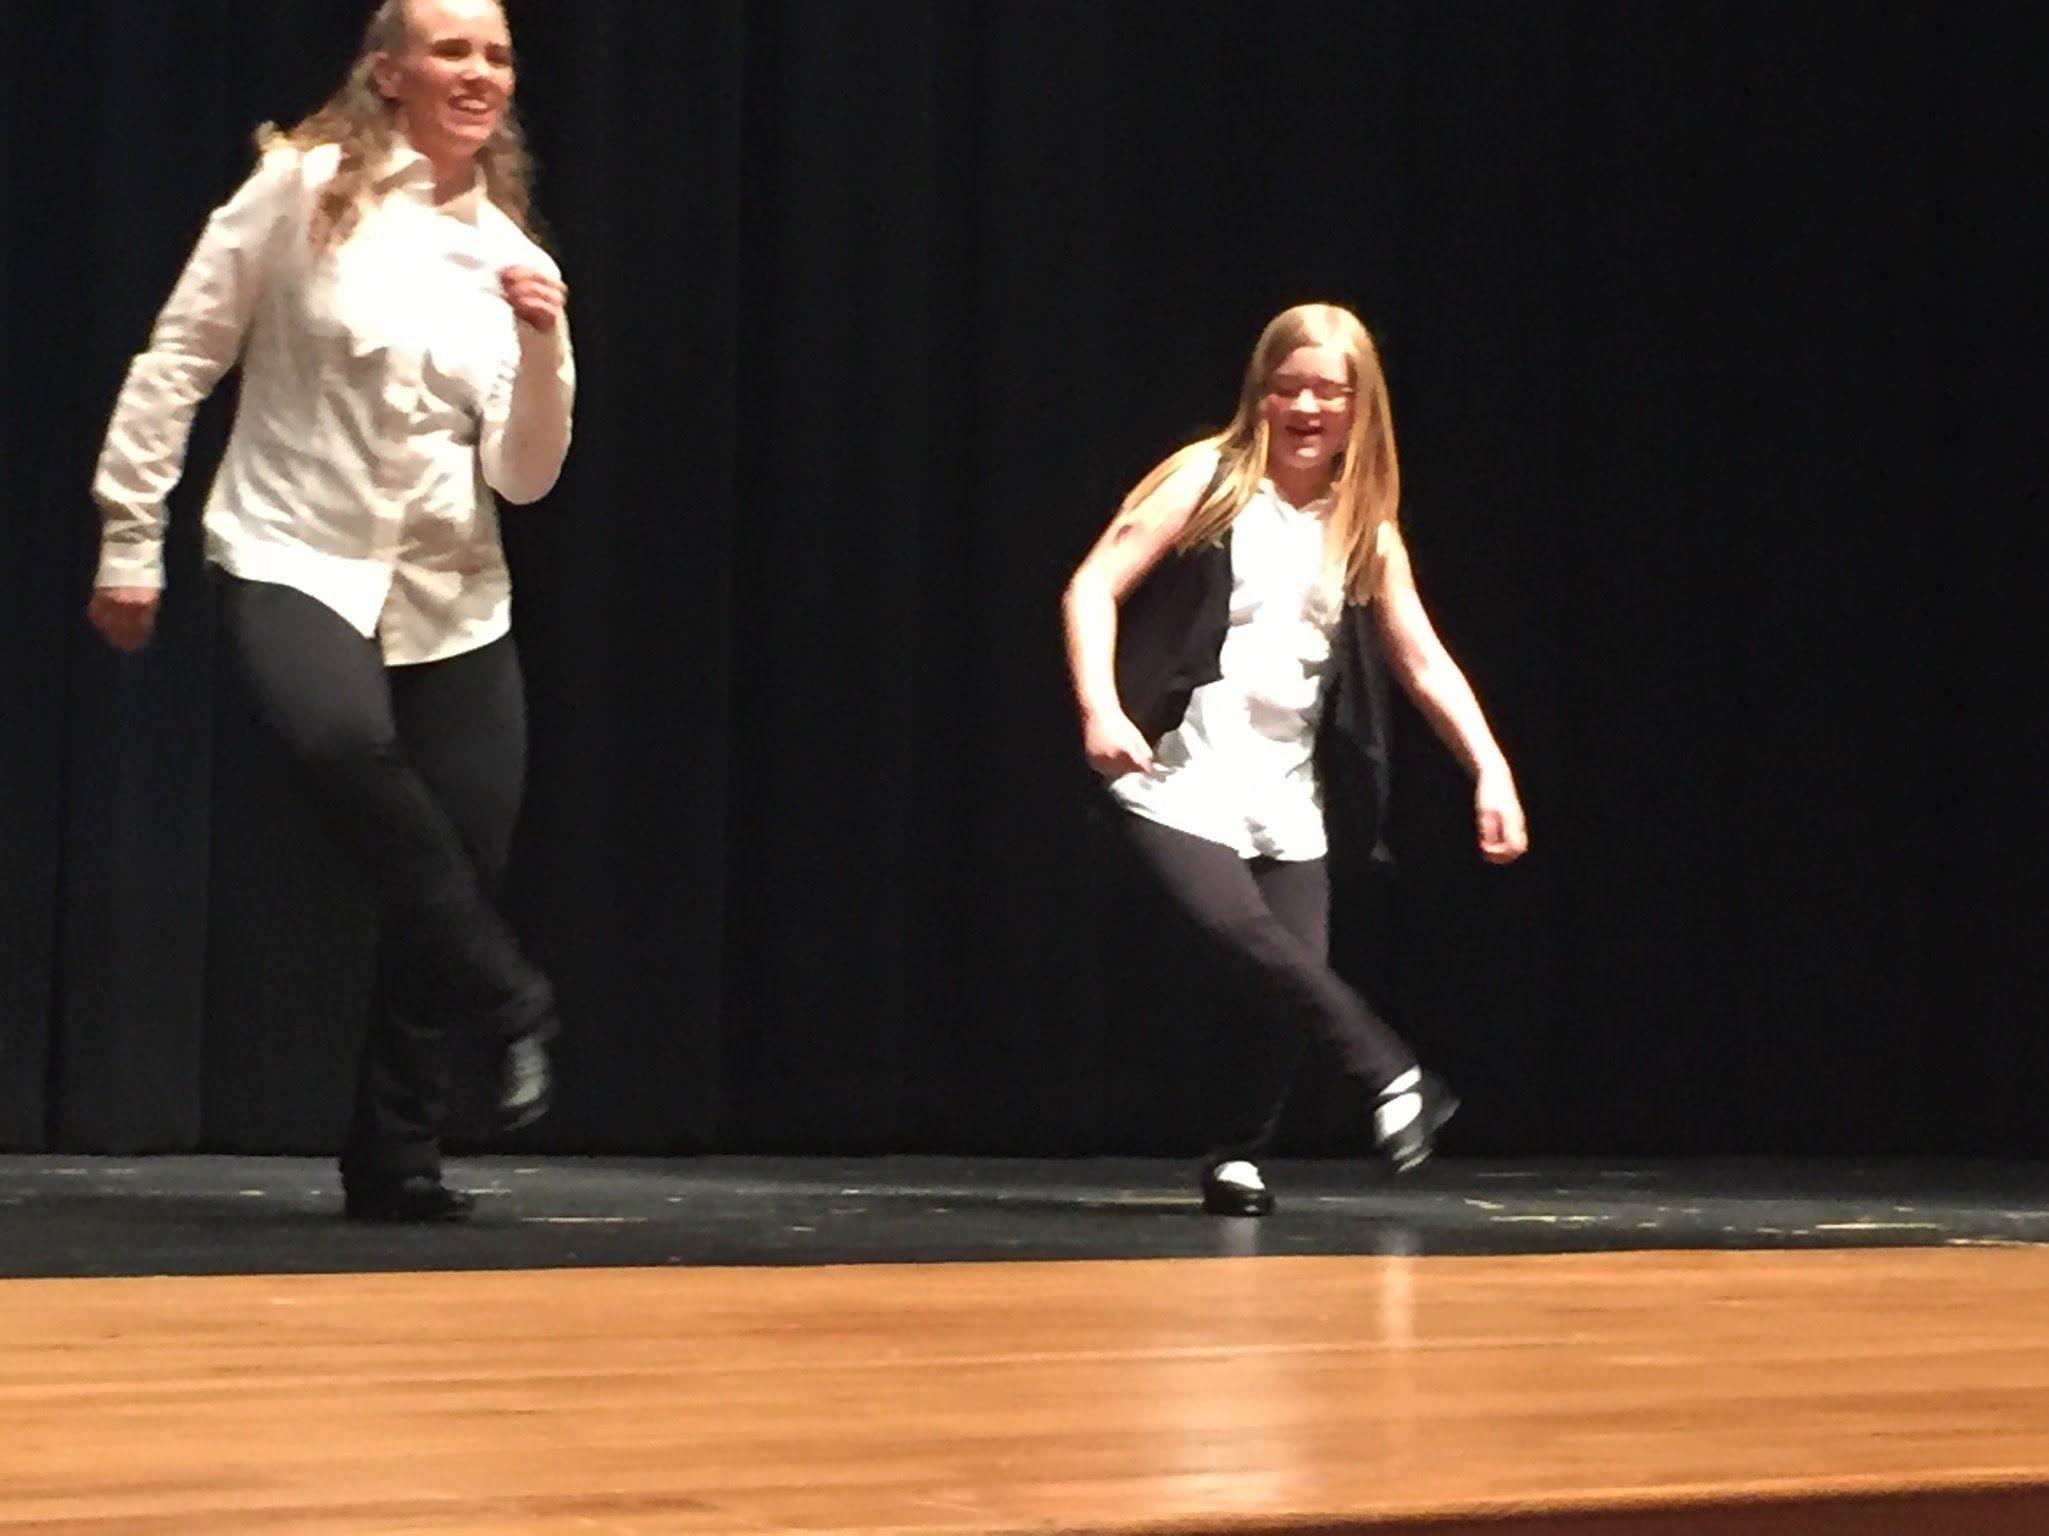 She Caught The Katy Sat 1130 Tap Freestyle Dance Academy Tap